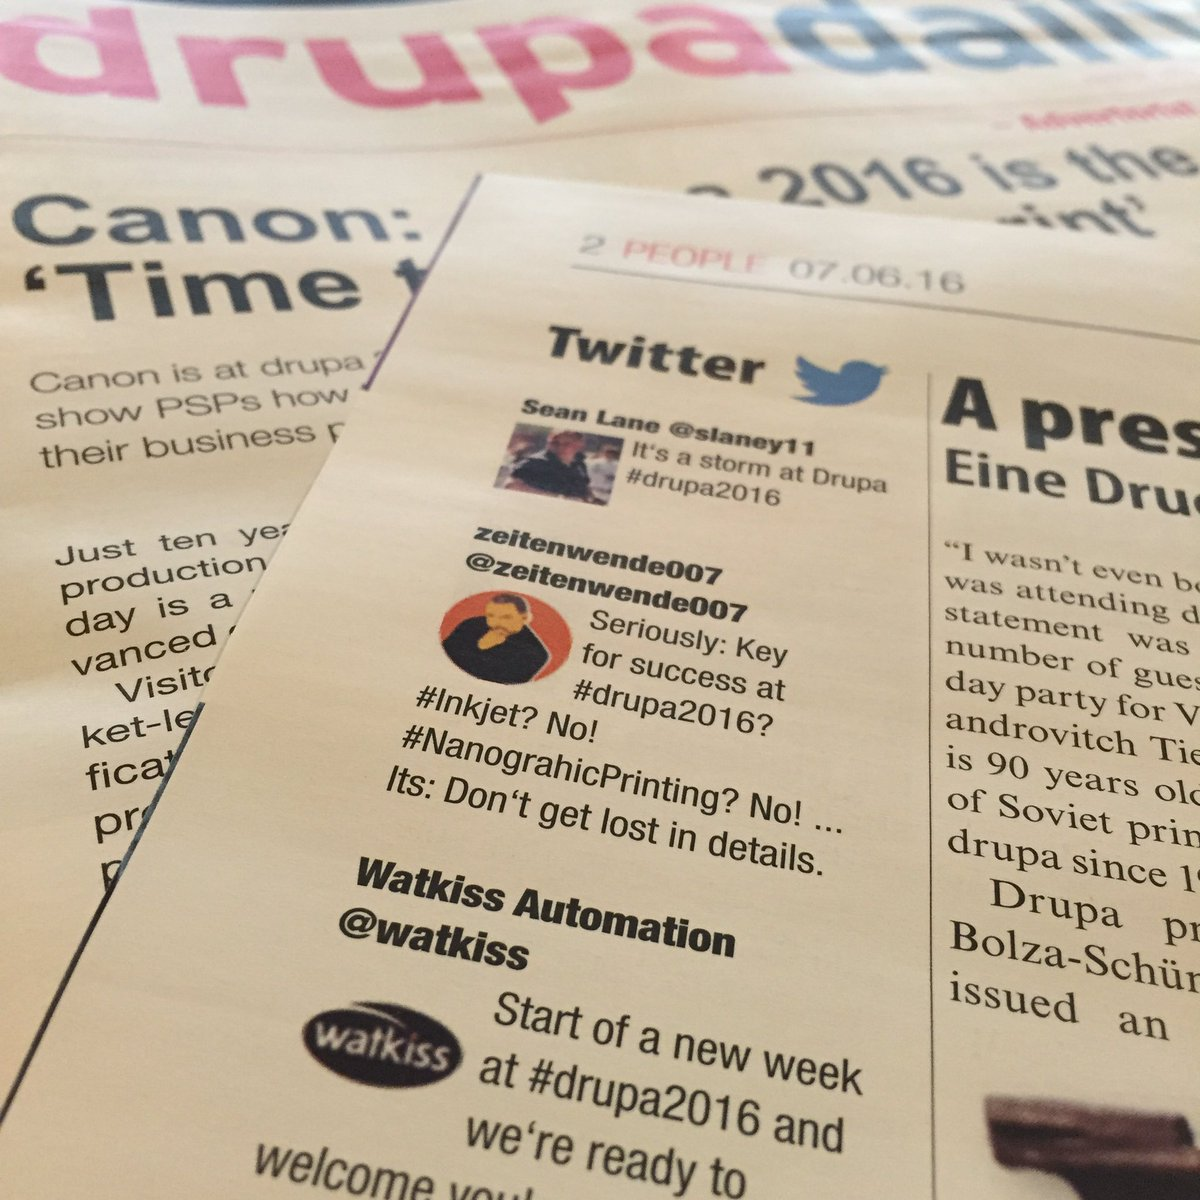 Have you seen that, @zeitenwende007? Your tweet is in the #drupa2016 daily. https://t.co/5Wd84XdLT0